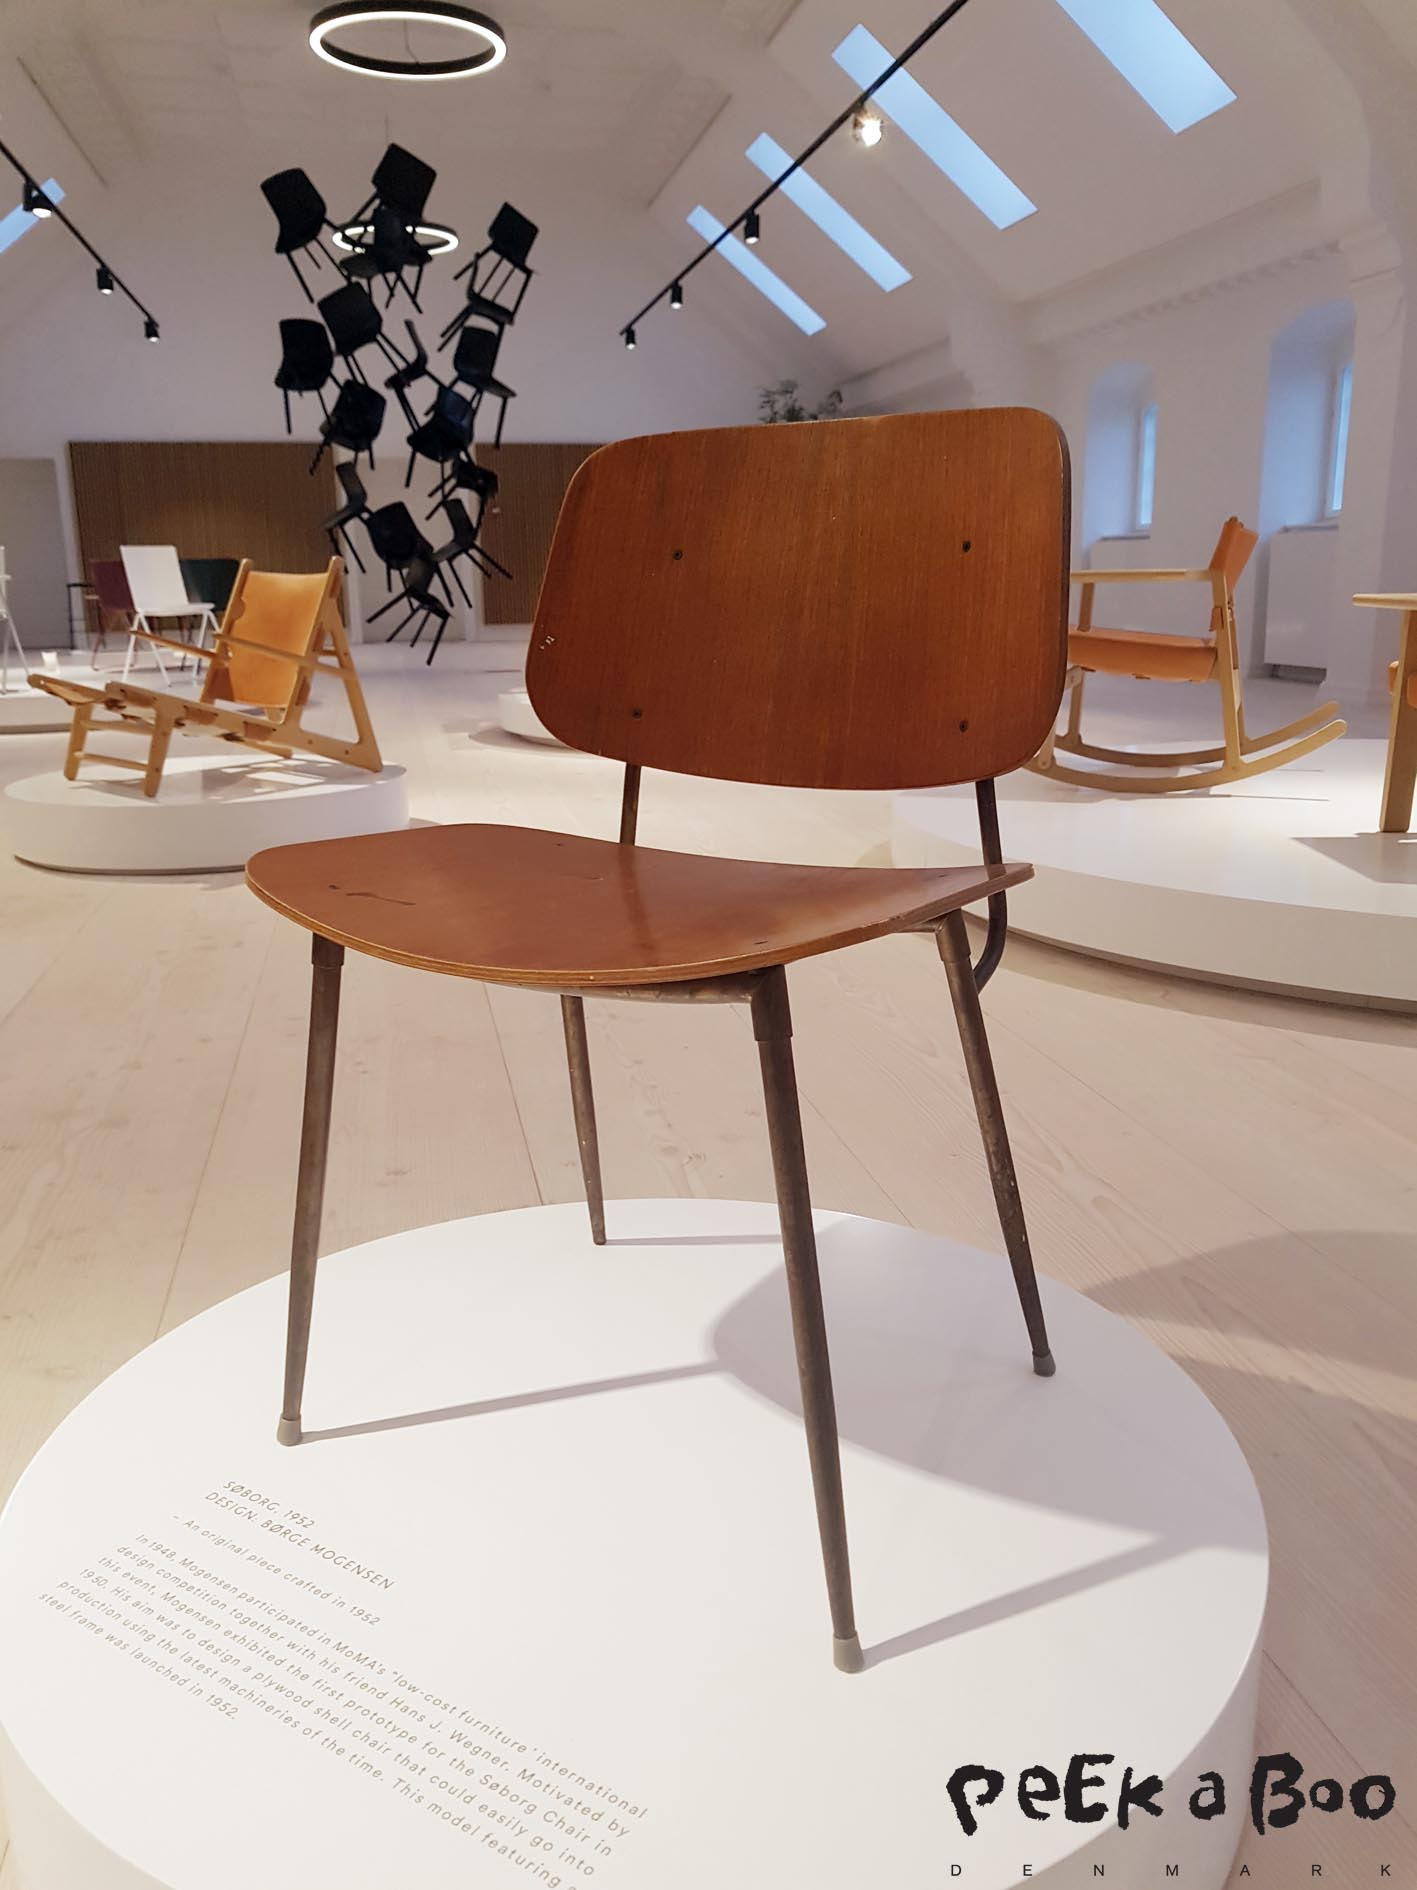 "The chair ""Søborg""designed by Børge Mogensen in 1952, his aim was to design a plywood shell chair that could easily go into production using the latest machineries of the time."